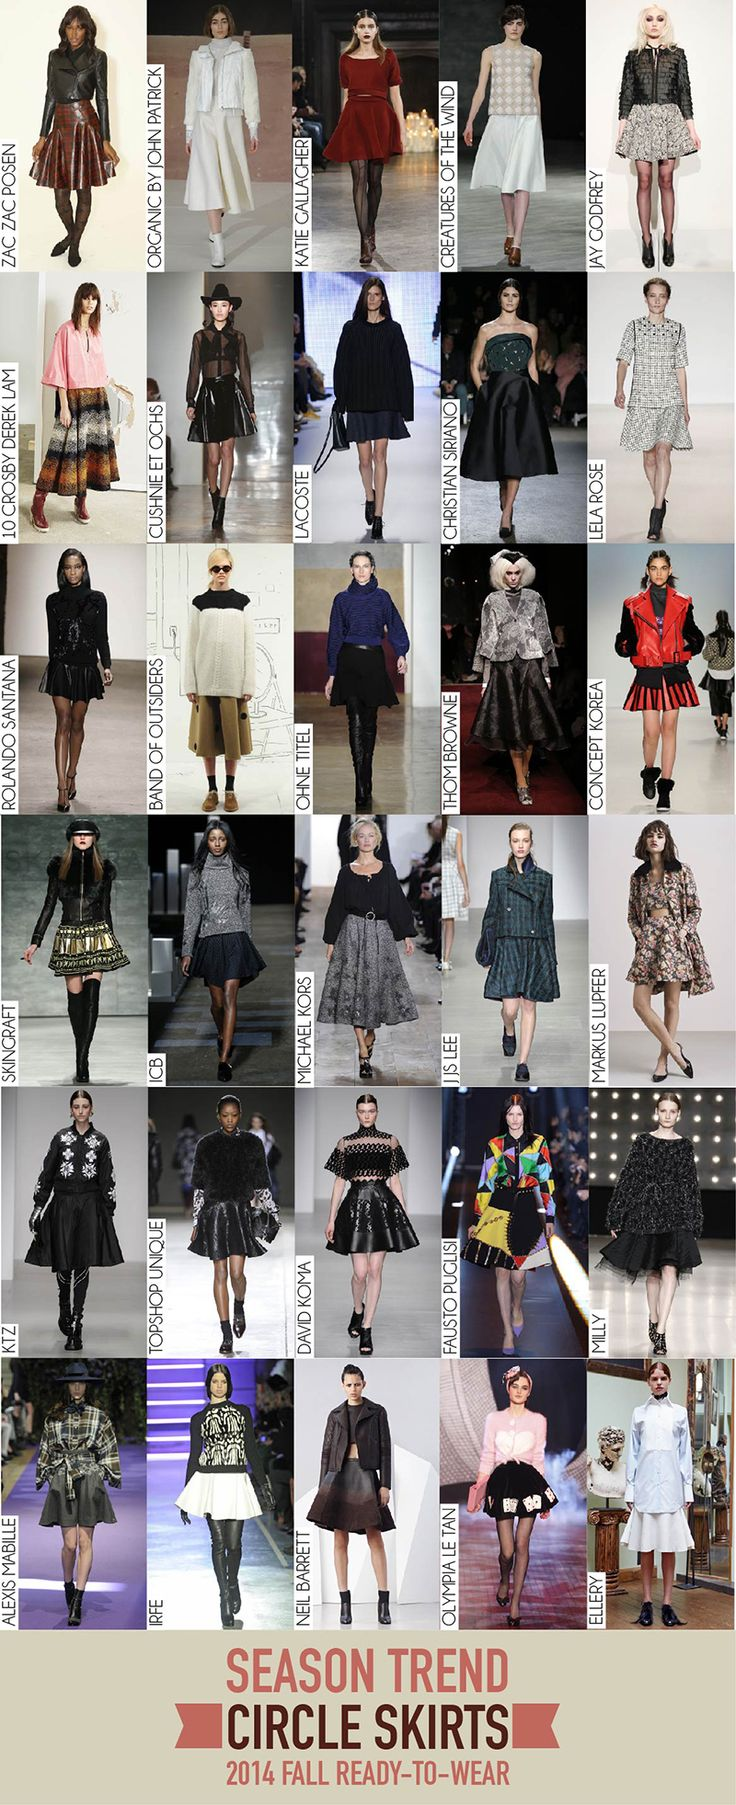 Circle Skirts Trend - 2014 Fall RTW Review